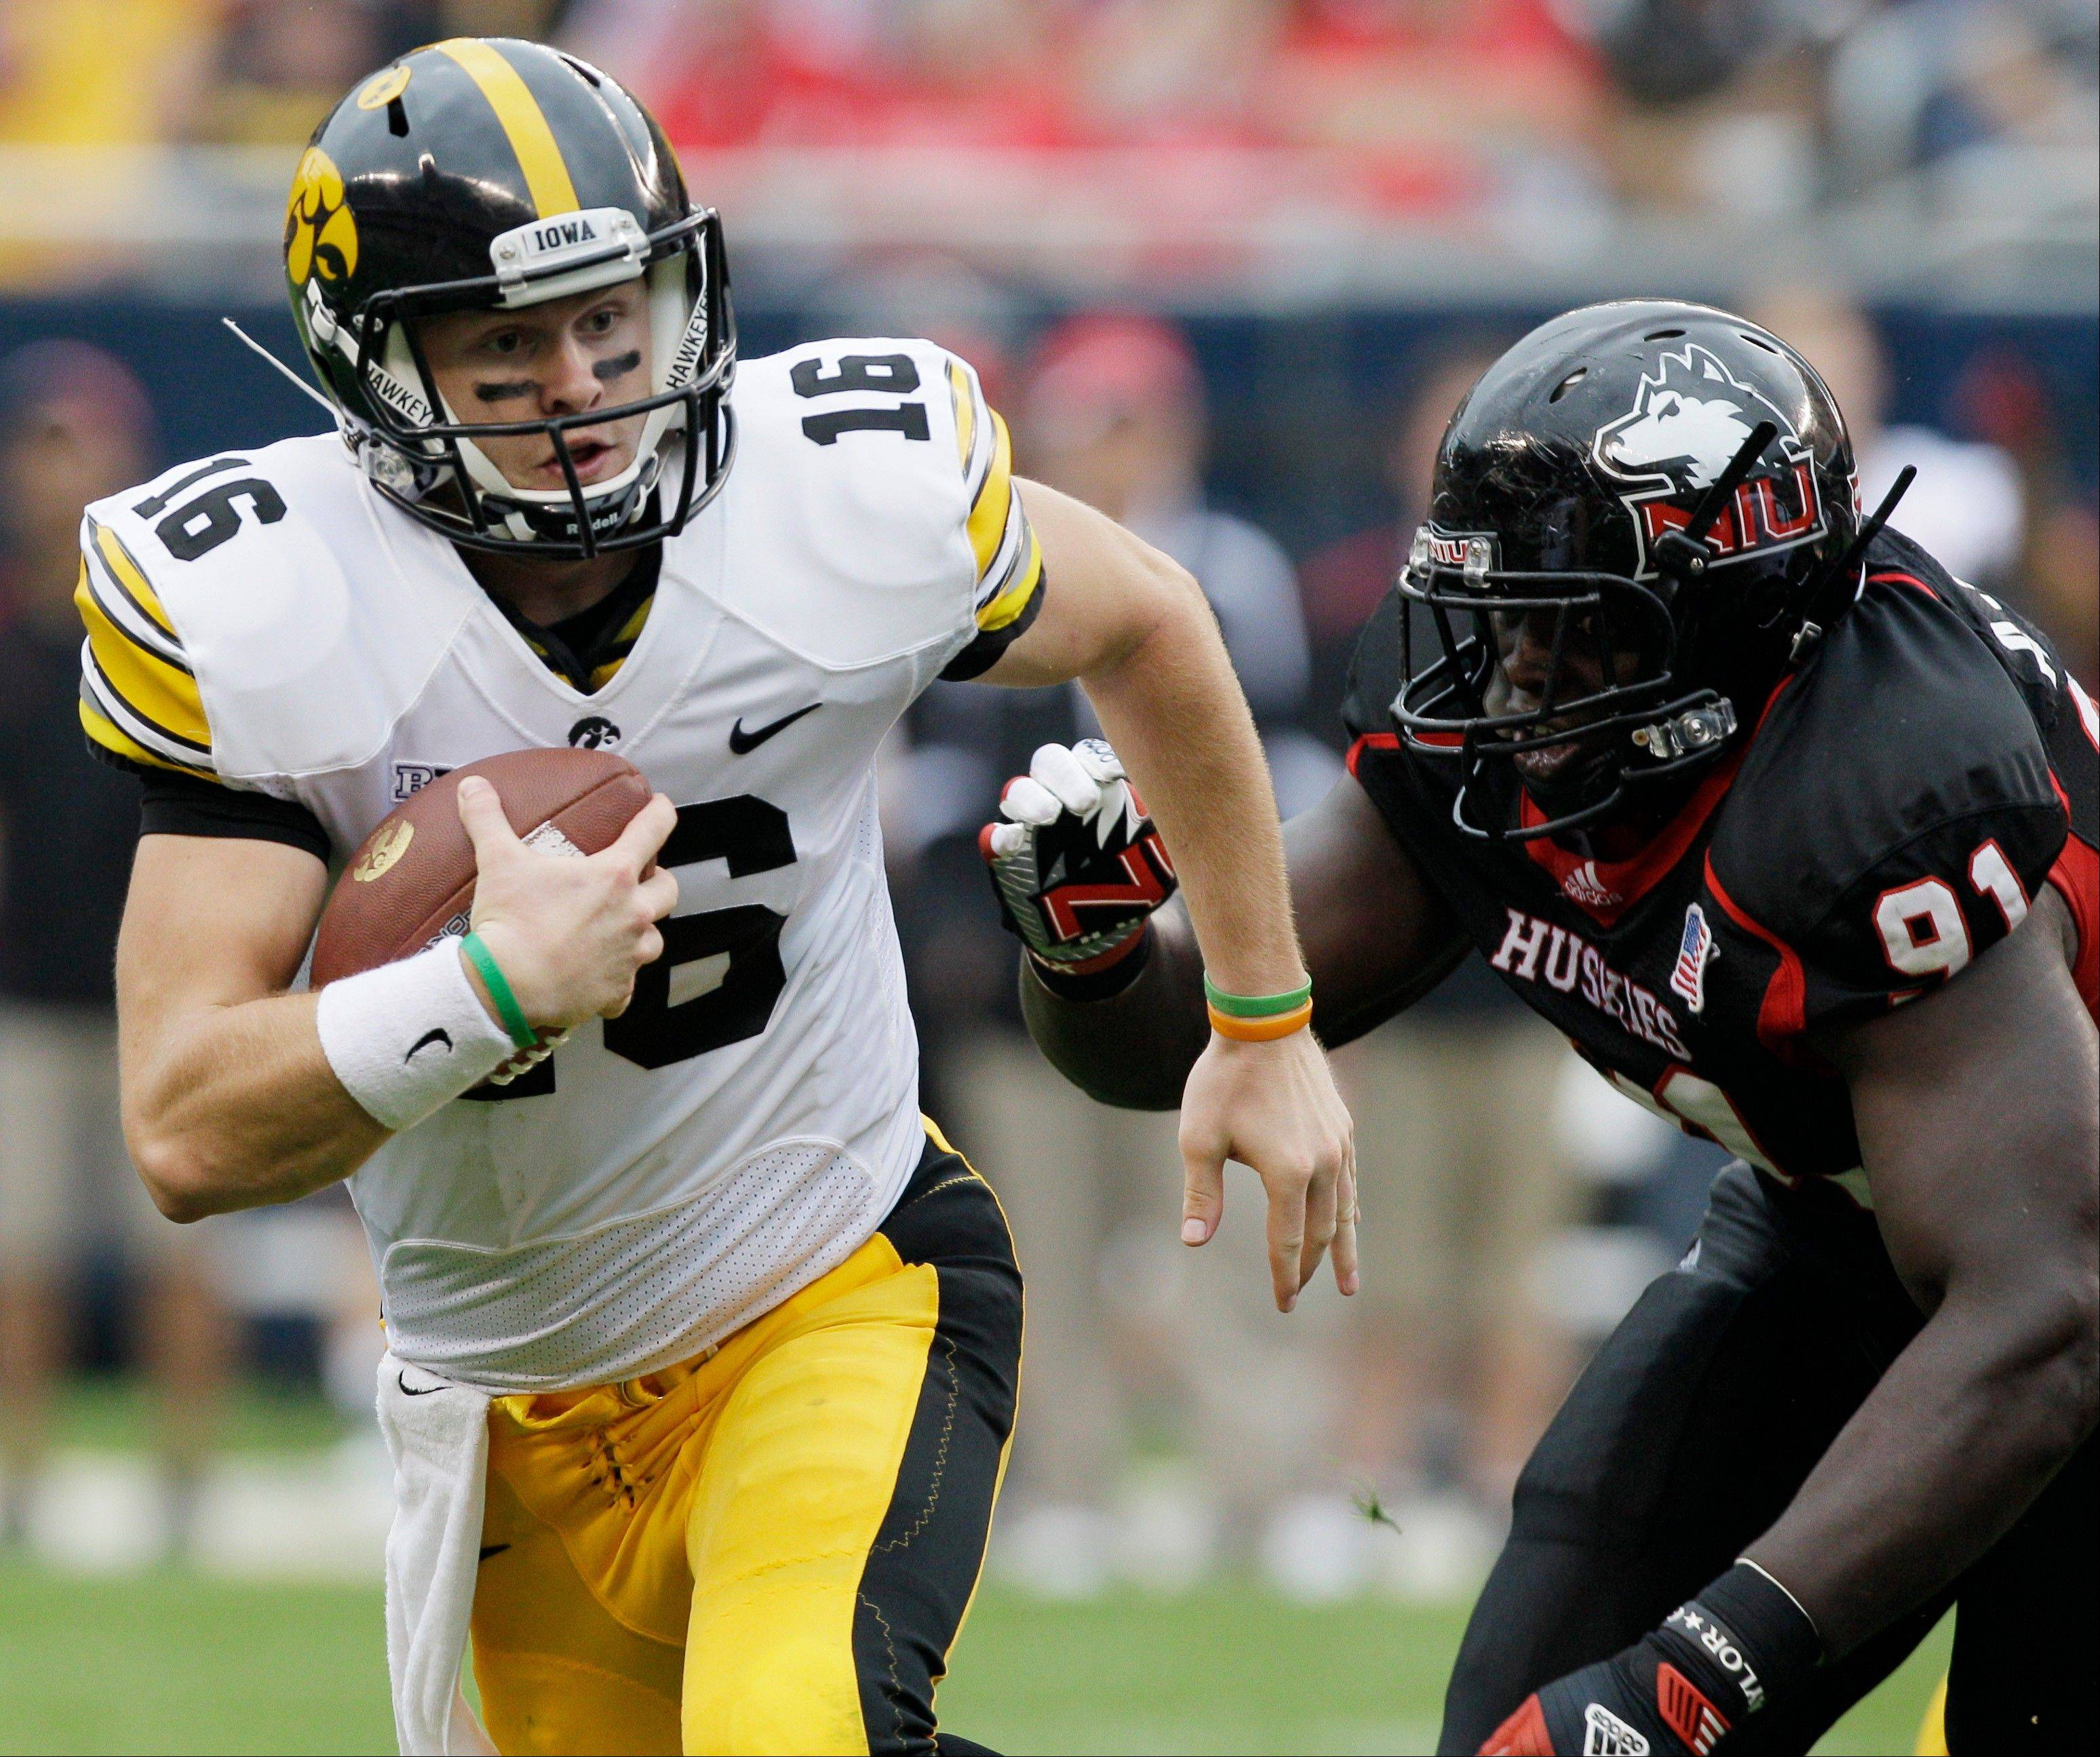 Iowa quarterback James Vandenberg (16) runs with the ball past Northern Illinois defensive line Anthony Wells (91) during the first half of an NCAA college football game at Soldier Field in Chicago, Saturday, Sept. 1, 2012.